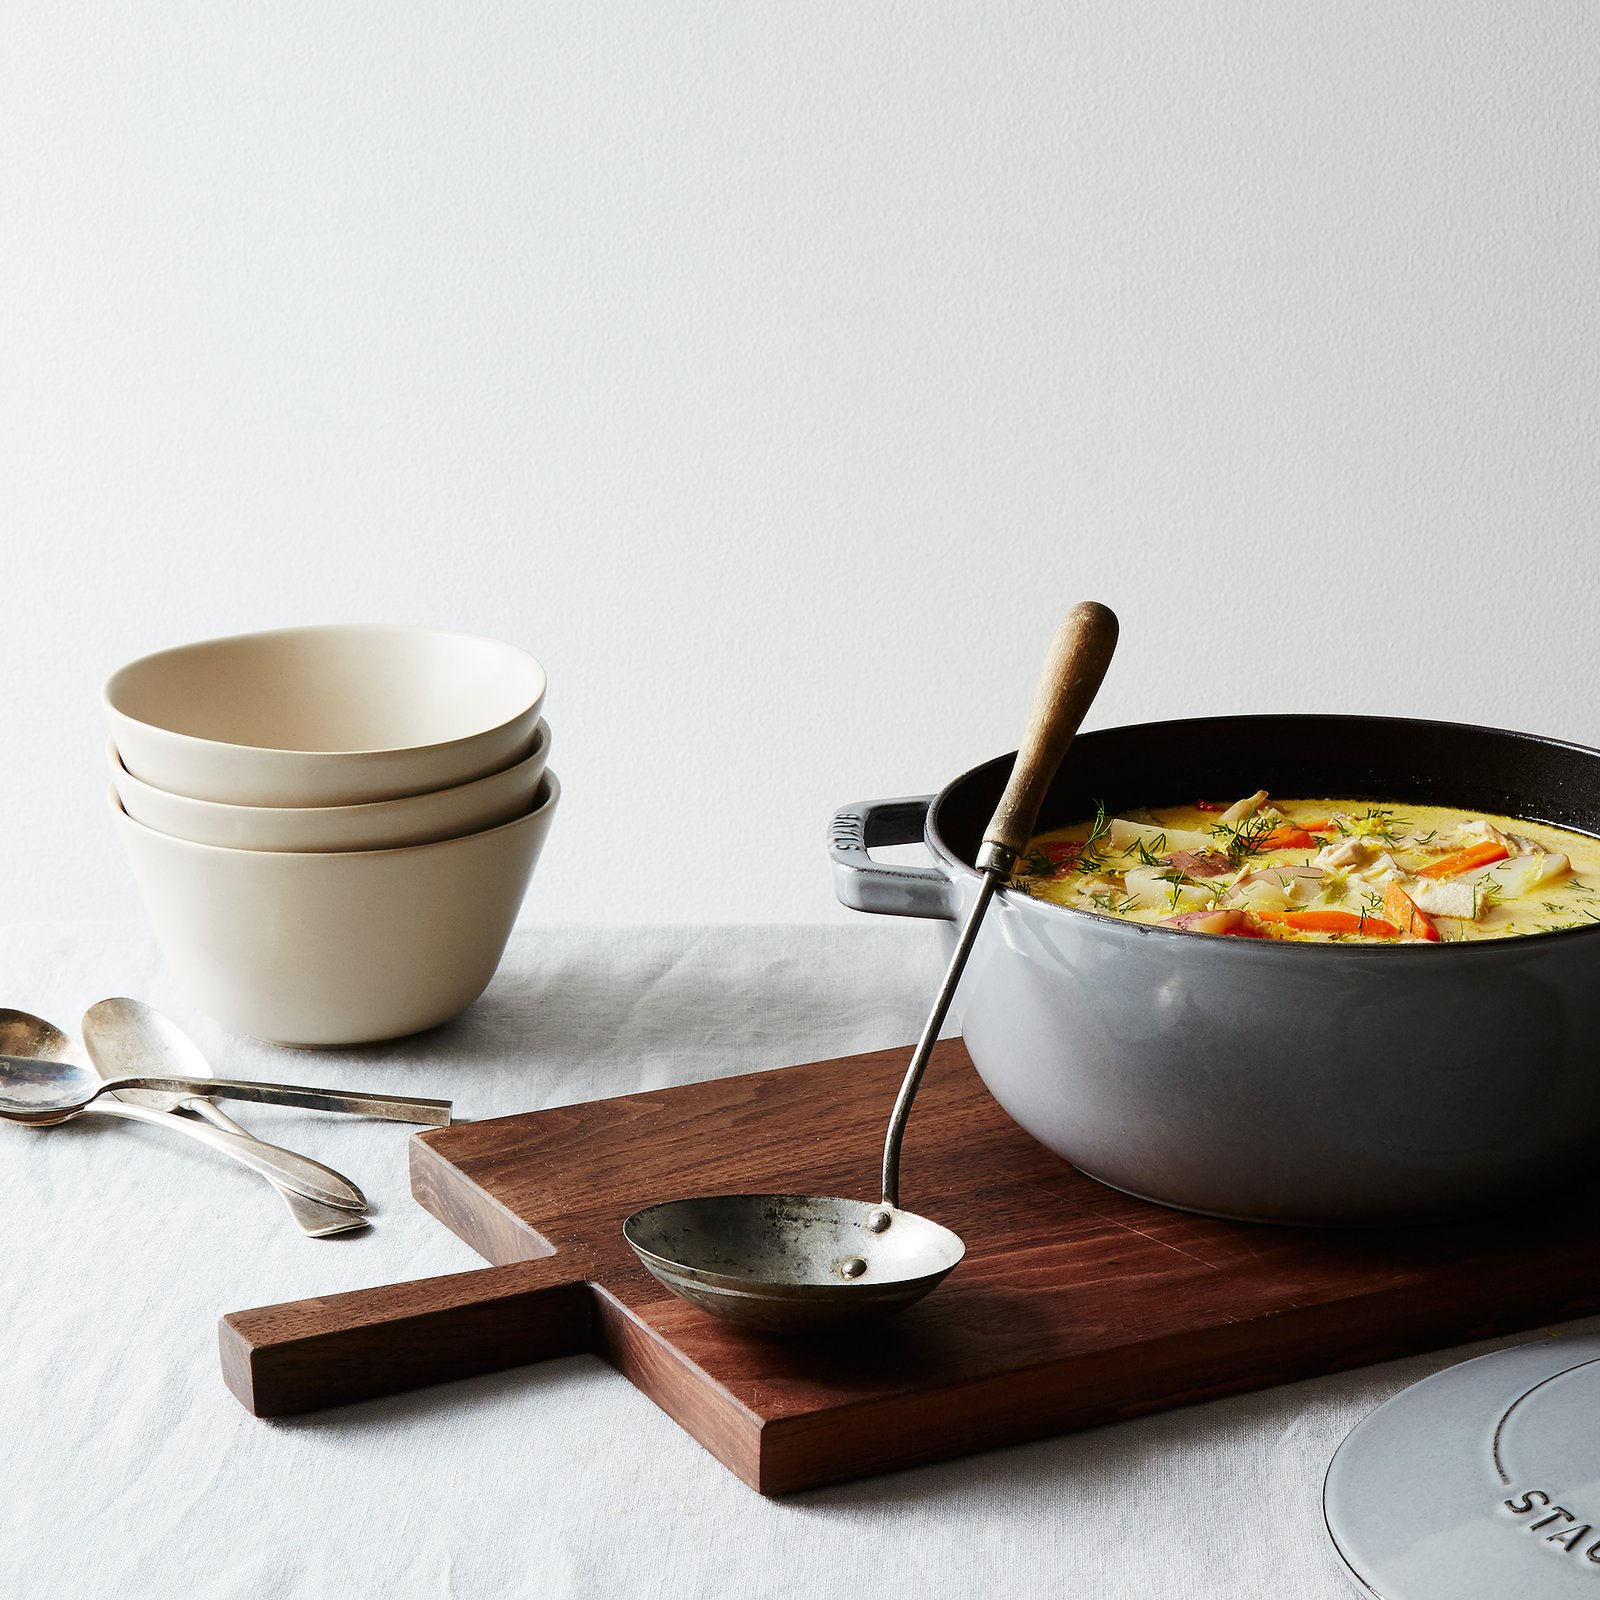 Photo 1 of 1 in Staub Essential French Oven, 3.75QT